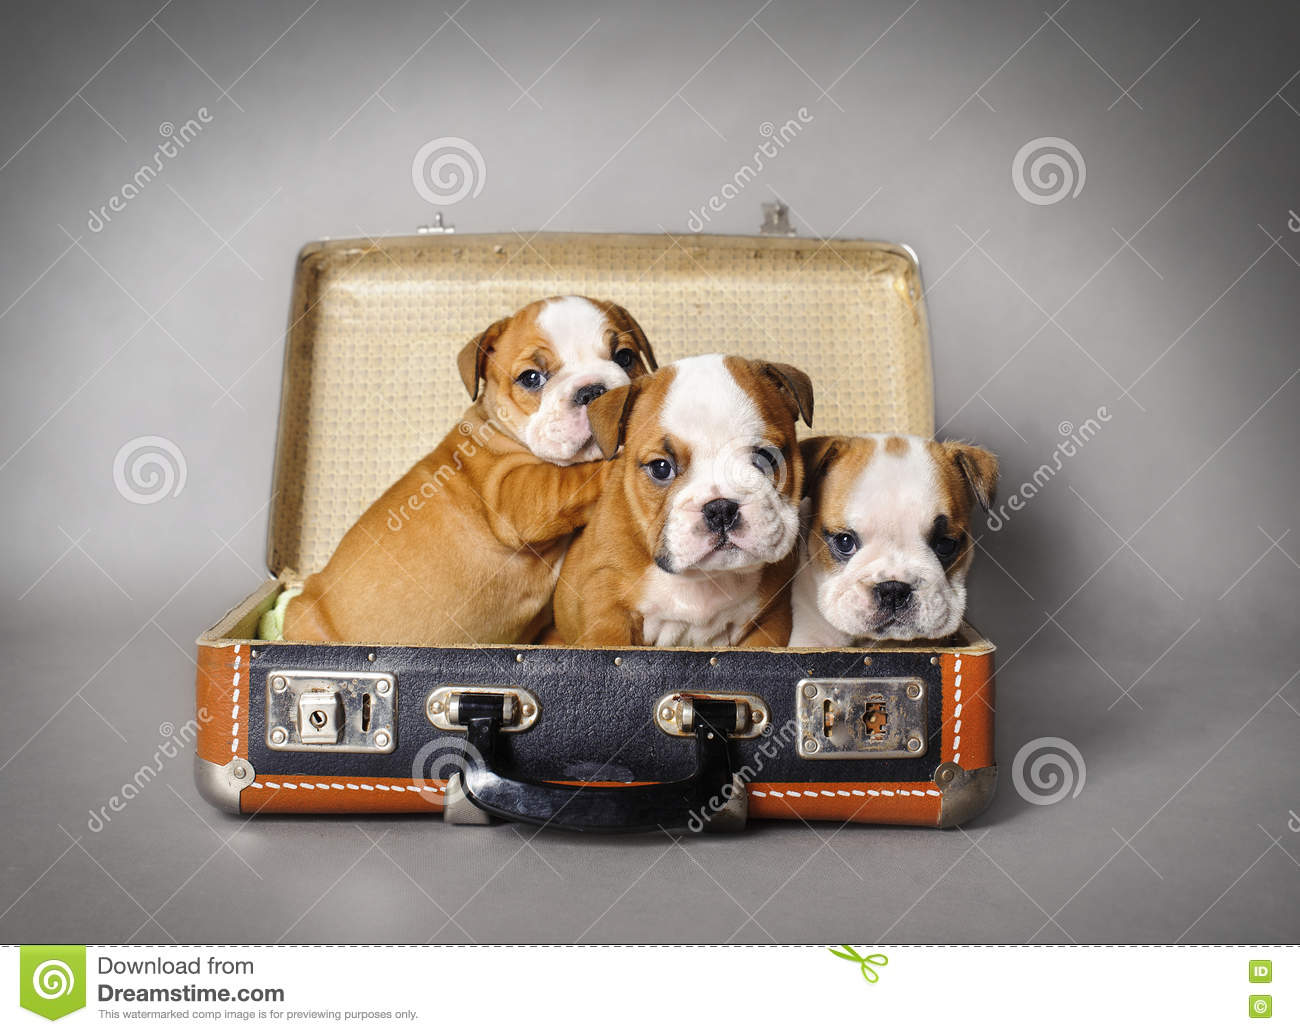 Bulldog Puppy Stock Image Image Of Young Adorable Bull 81465531